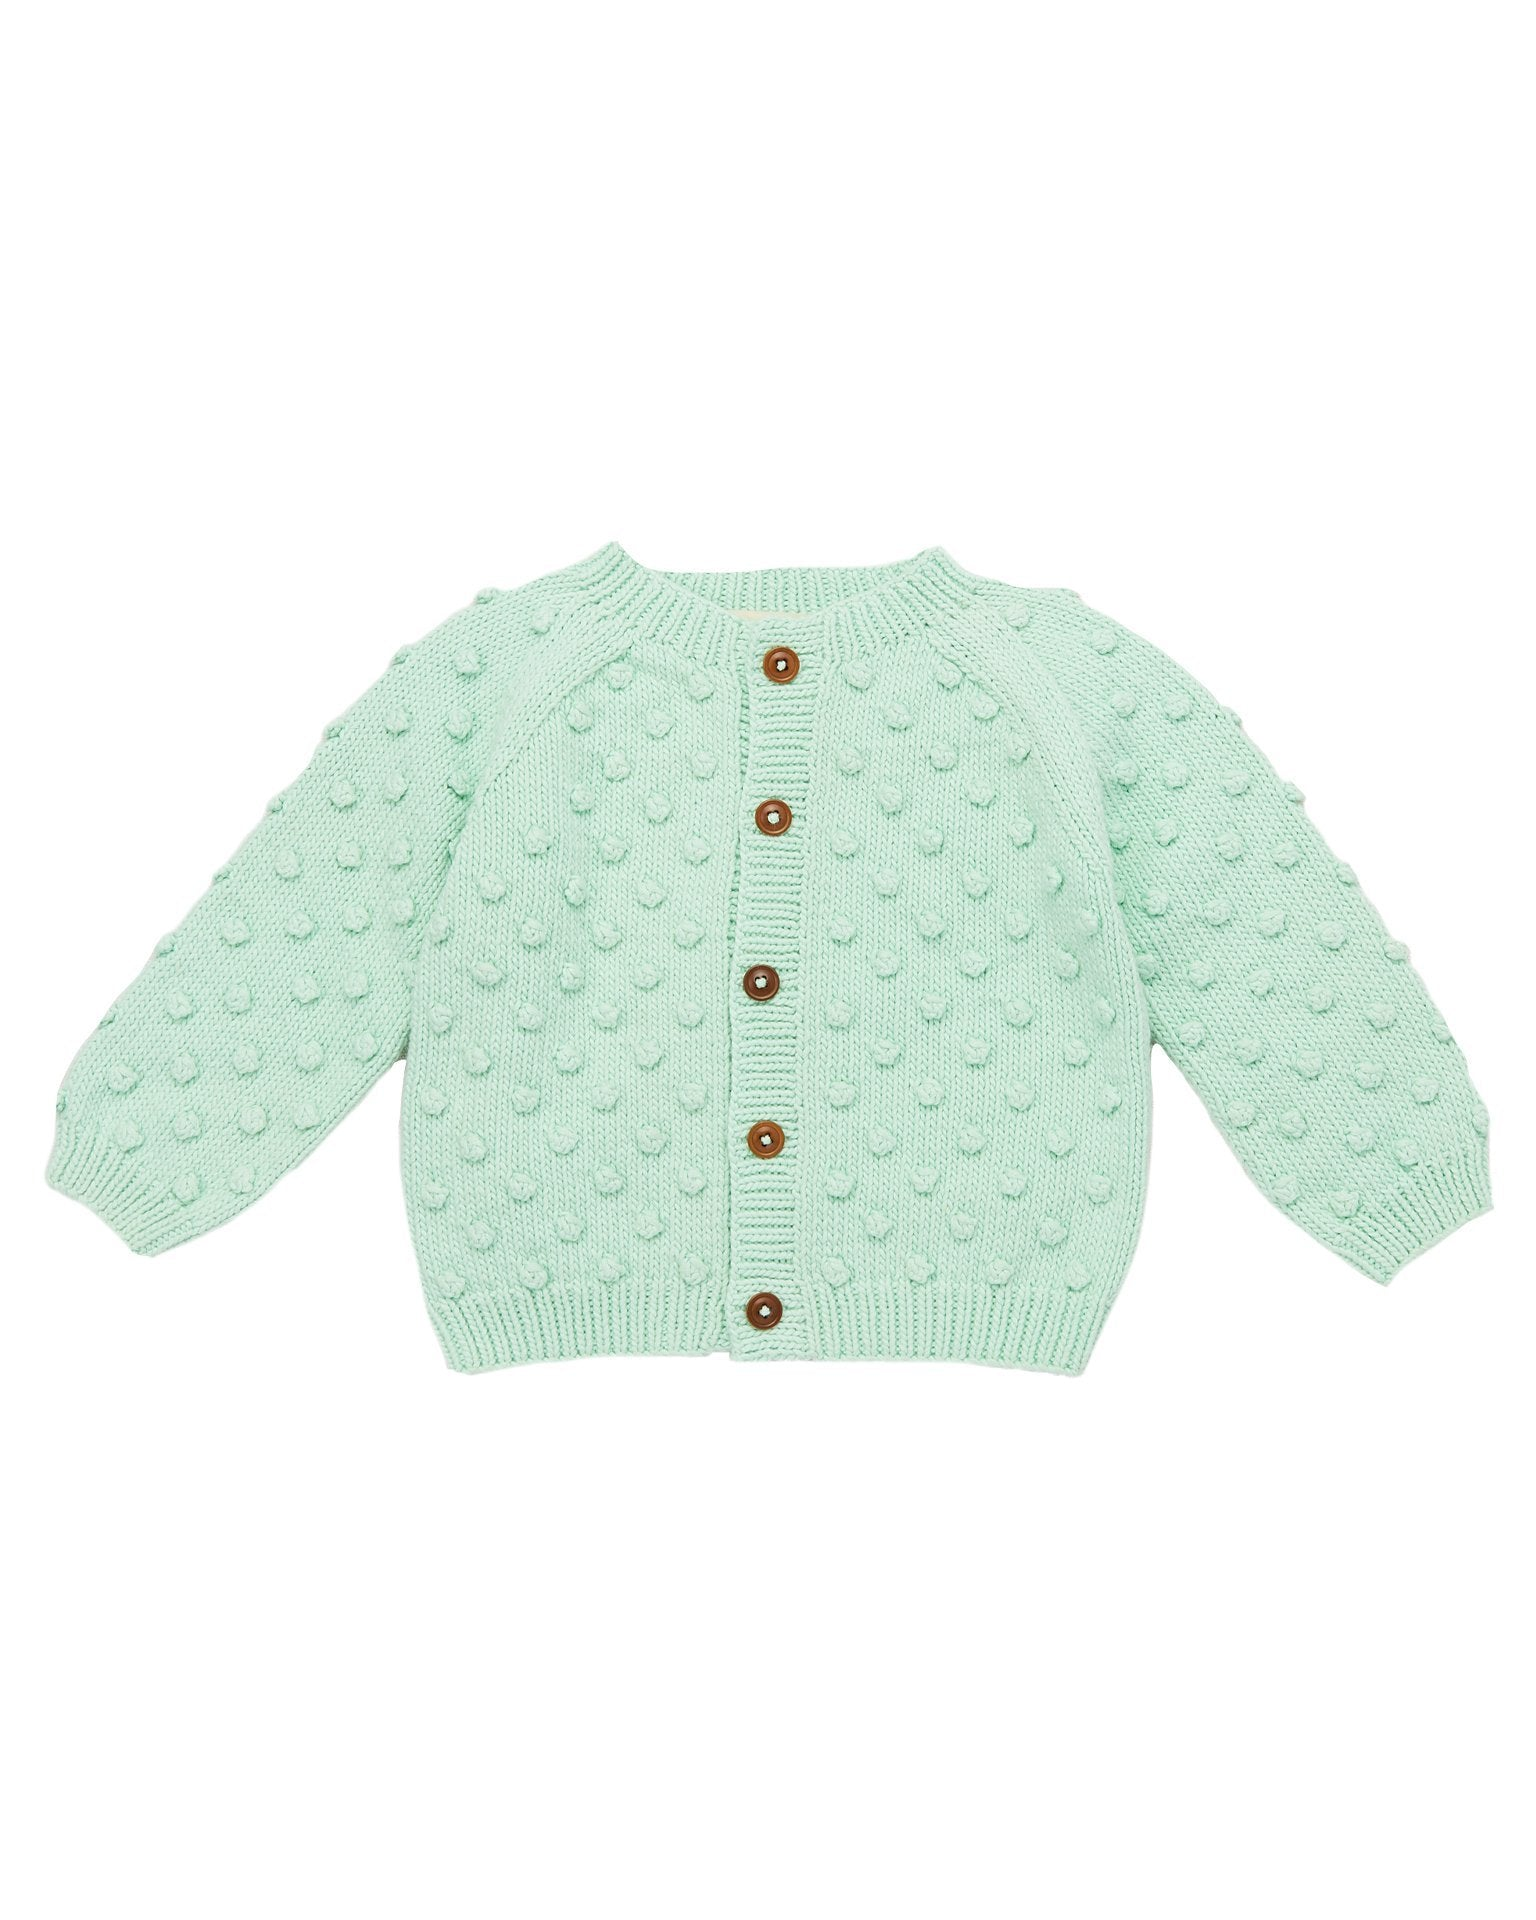 Little misha + puff girl summer popcorn cardigan in mint